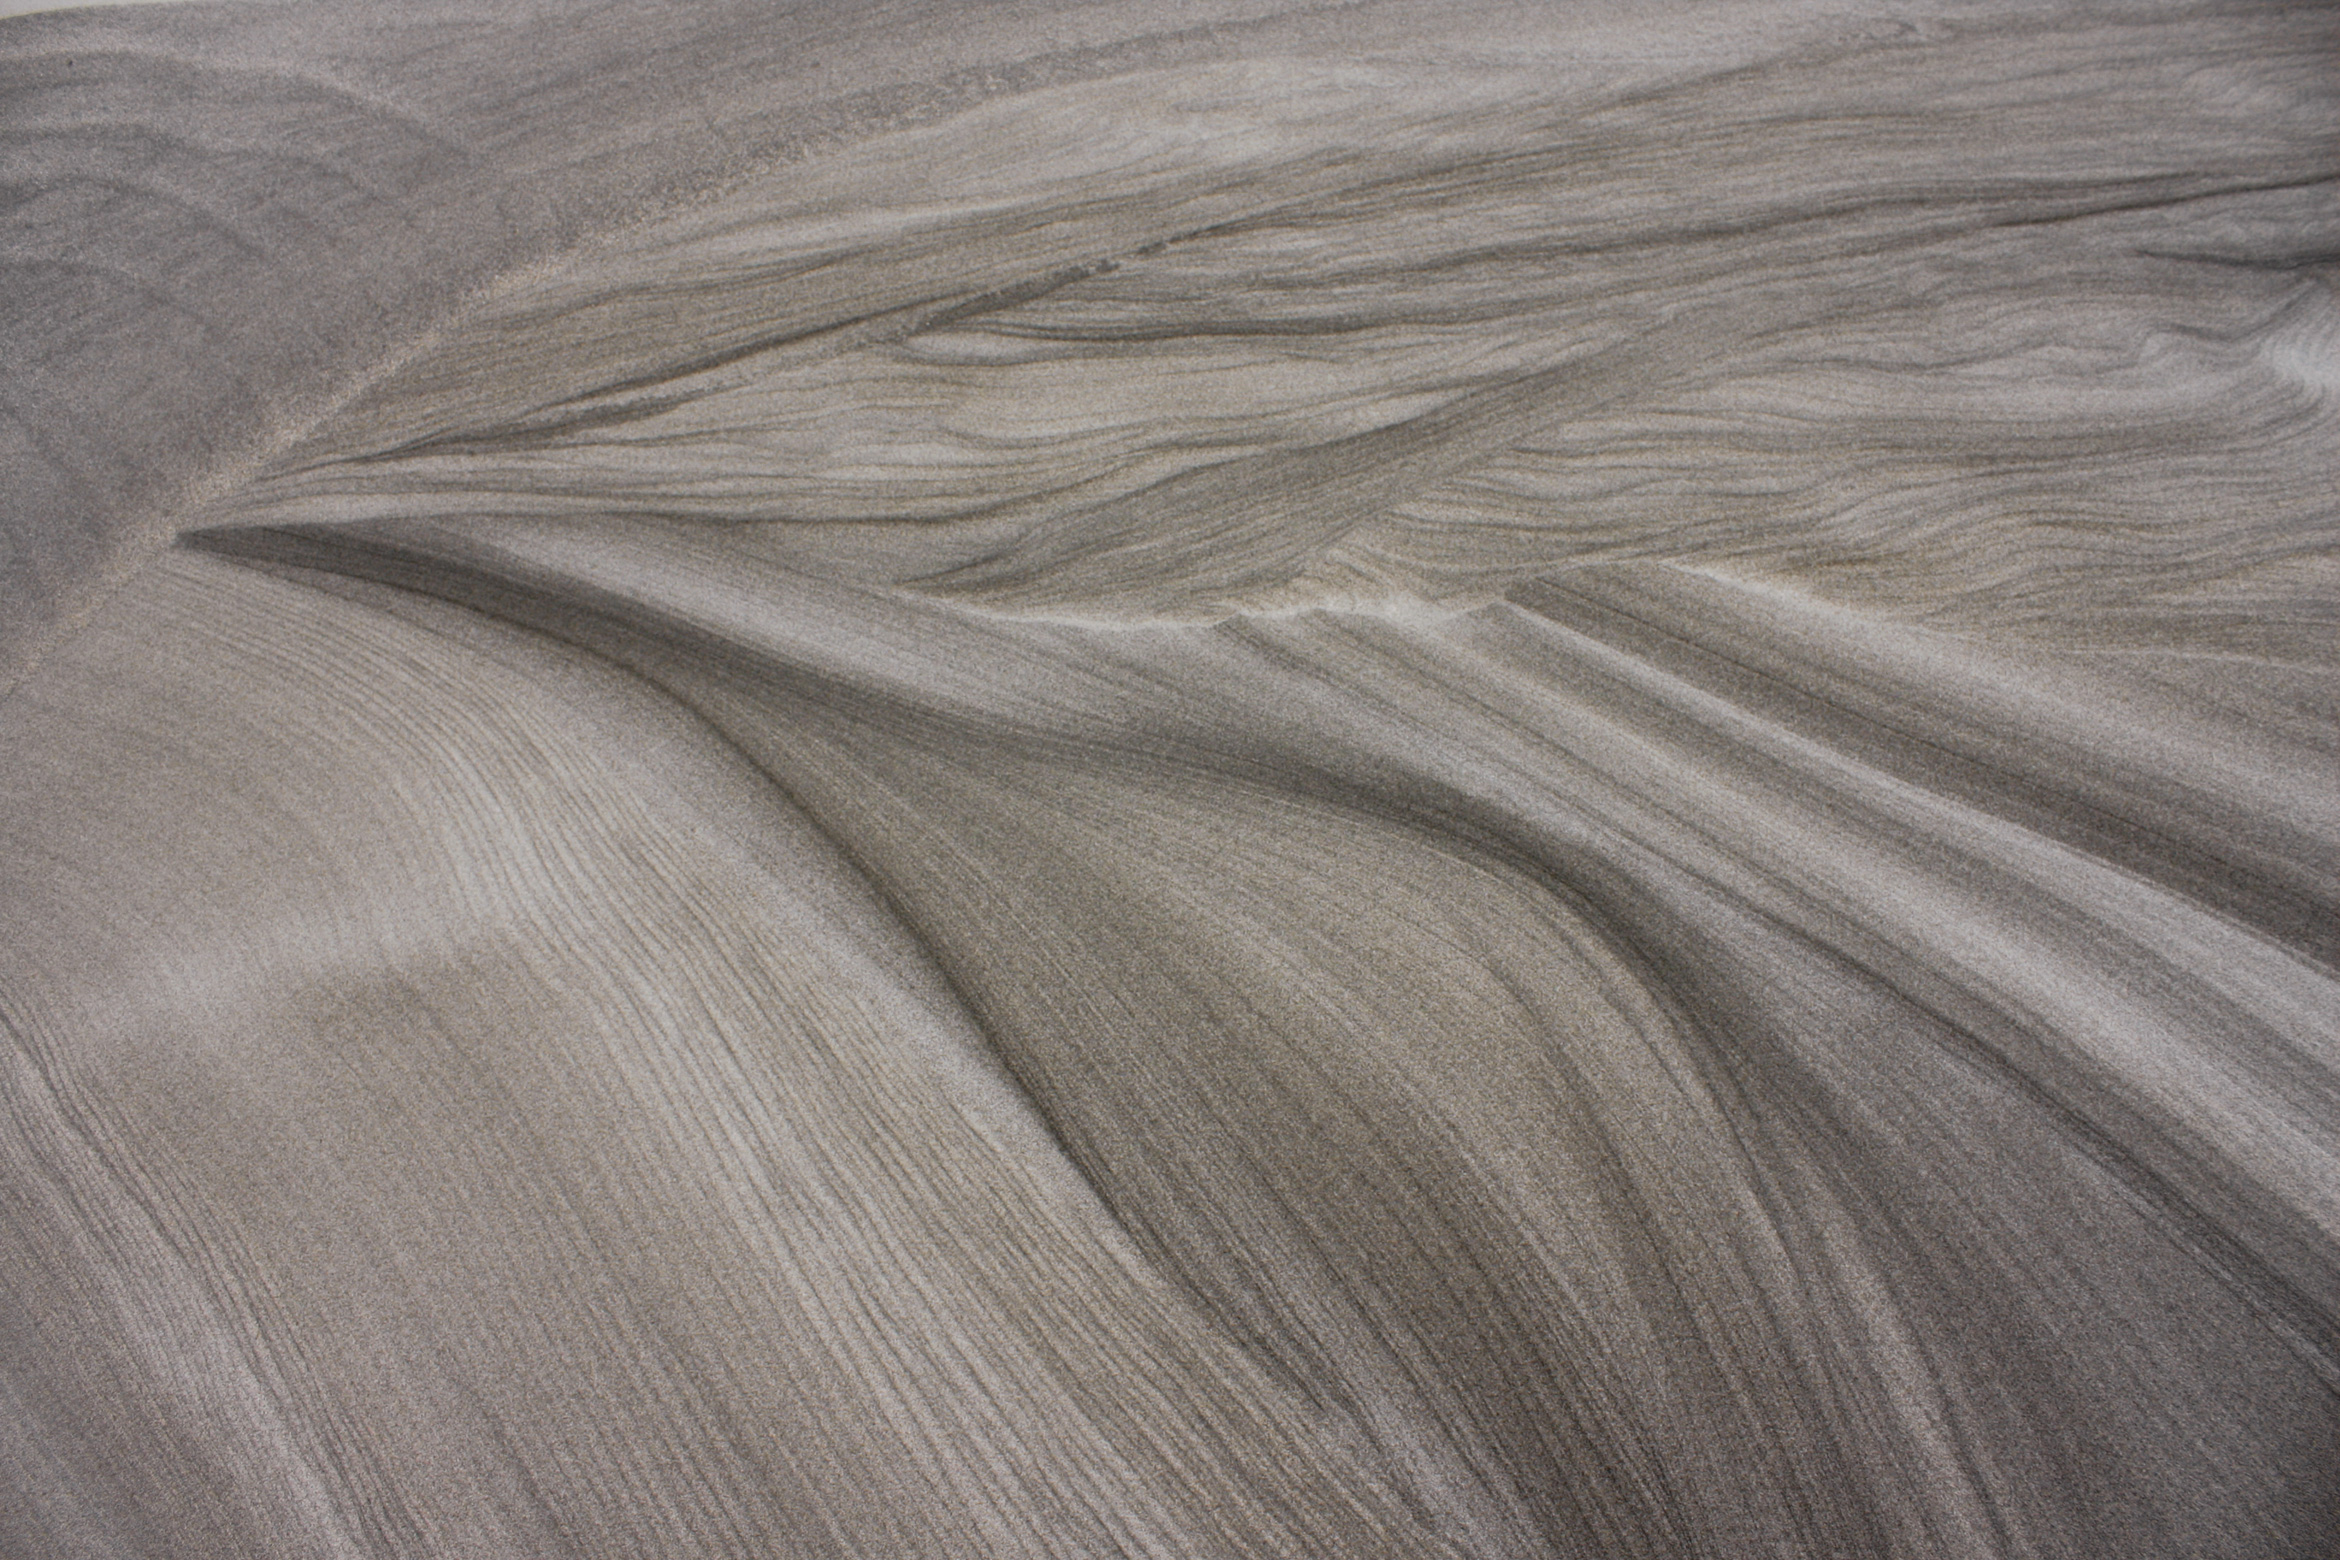 sand-patterns-wind-art-black-sand